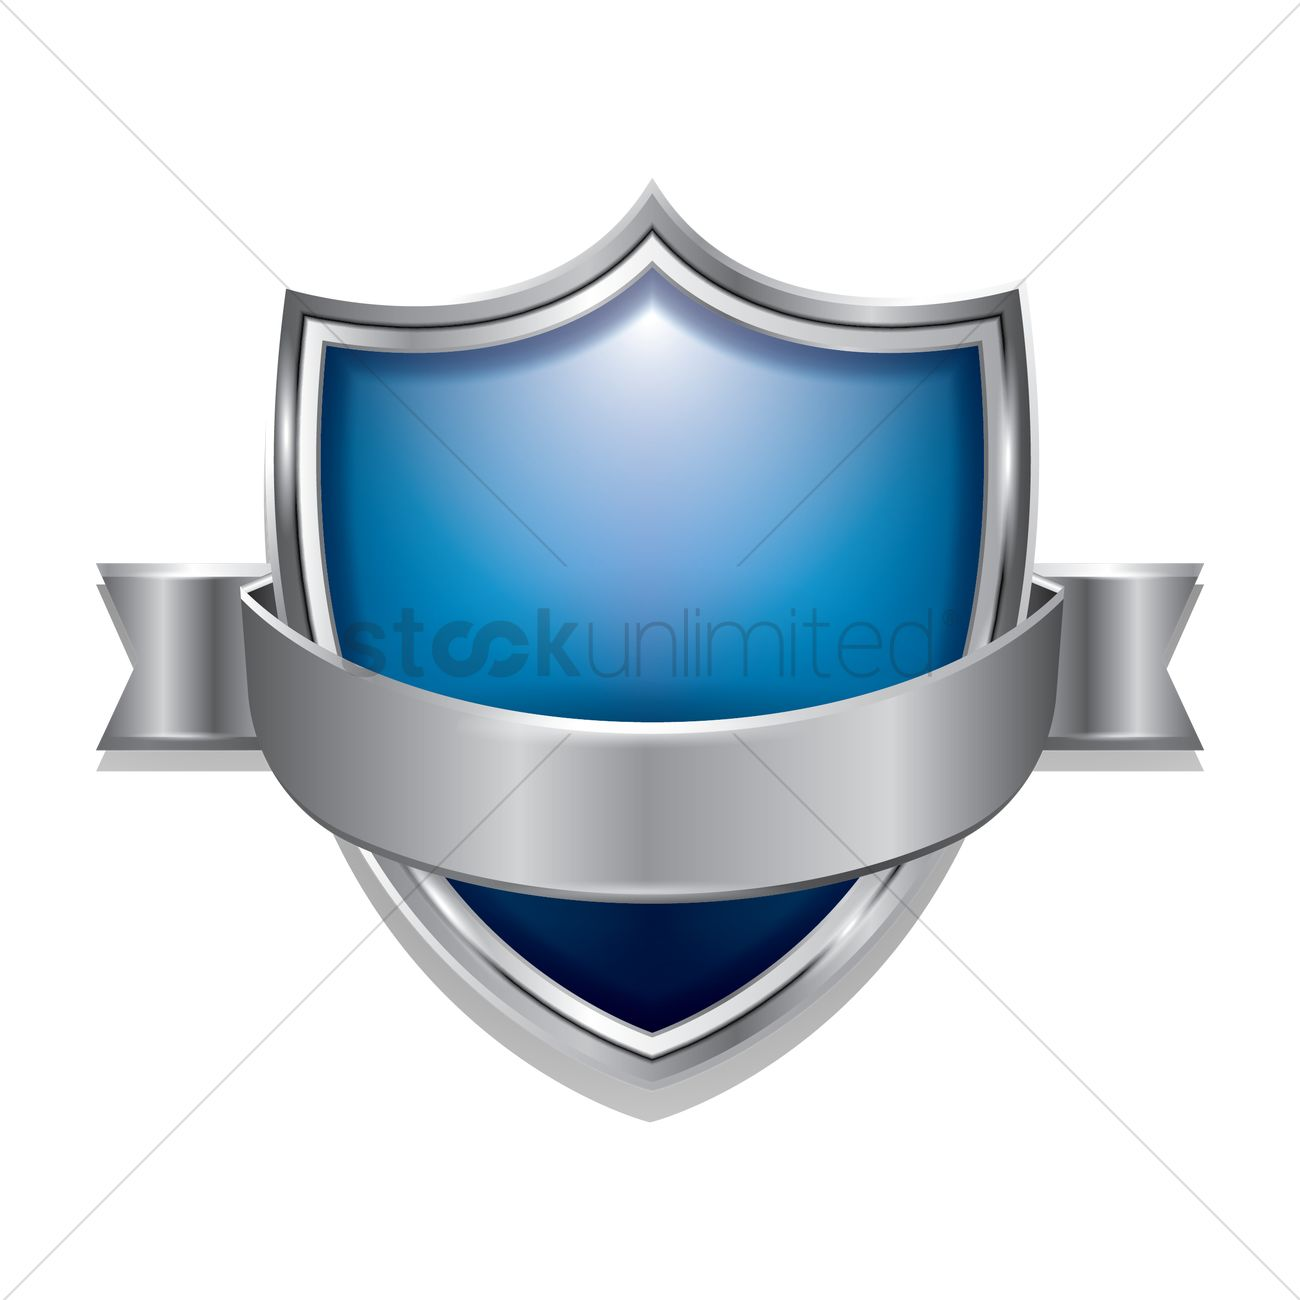 Blue shield emblem vector image 1879779 stockunlimited blue shield emblem vector graphic buycottarizona Image collections